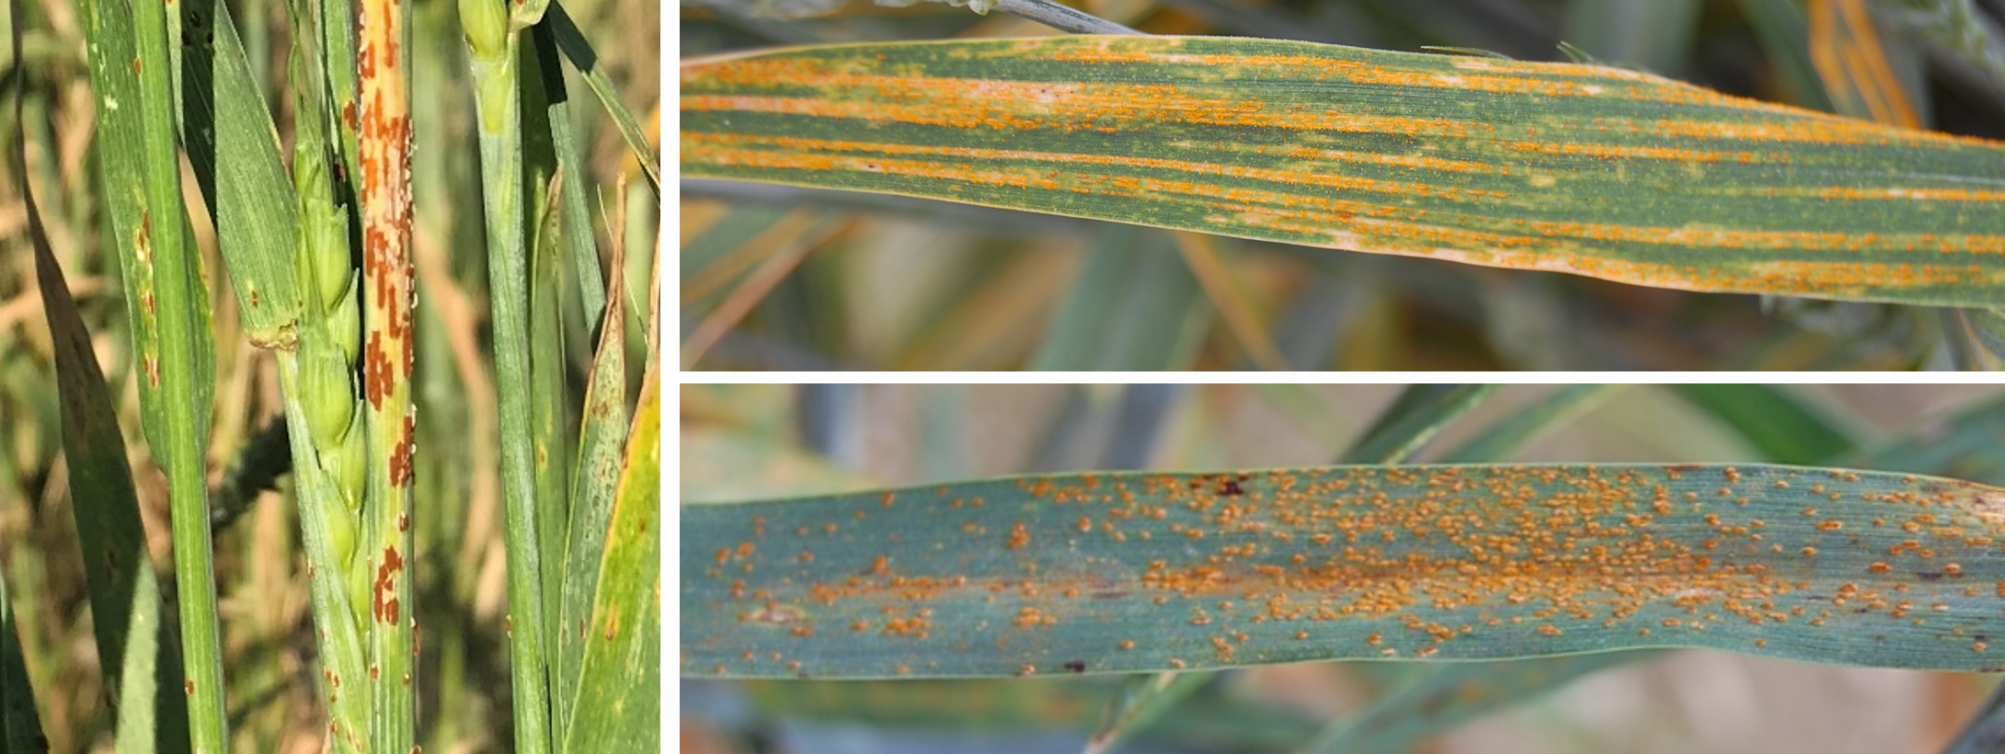 Stem rust, yellow rust and leaf rust on wheat